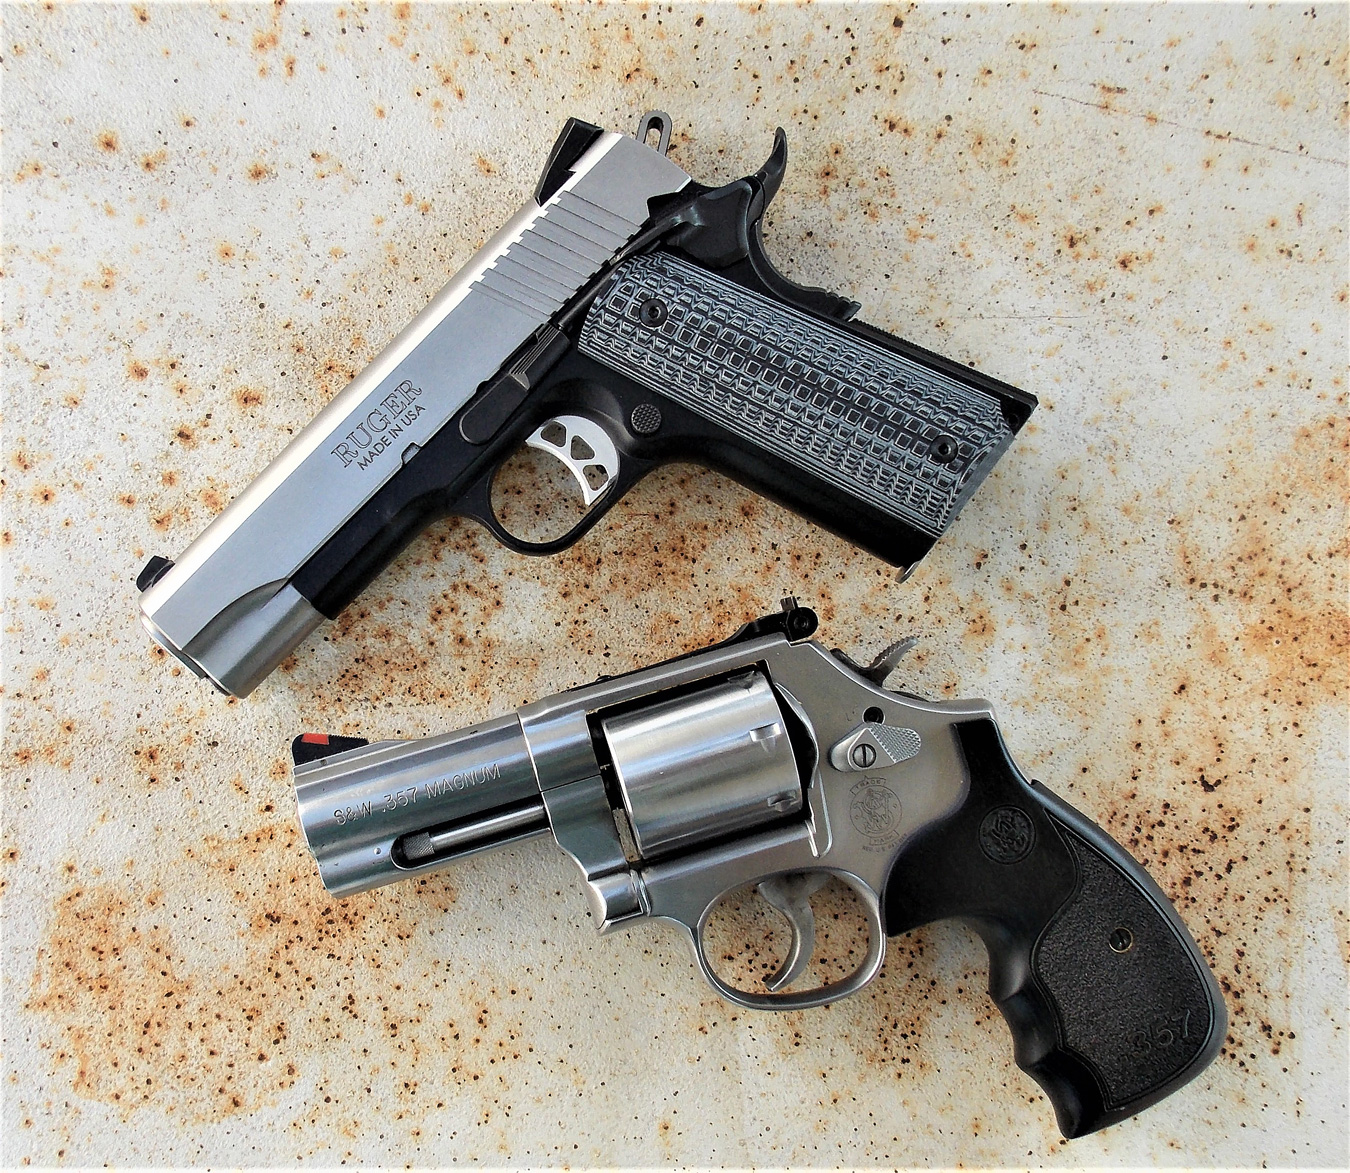 COmpact 1911 pistol and revolver